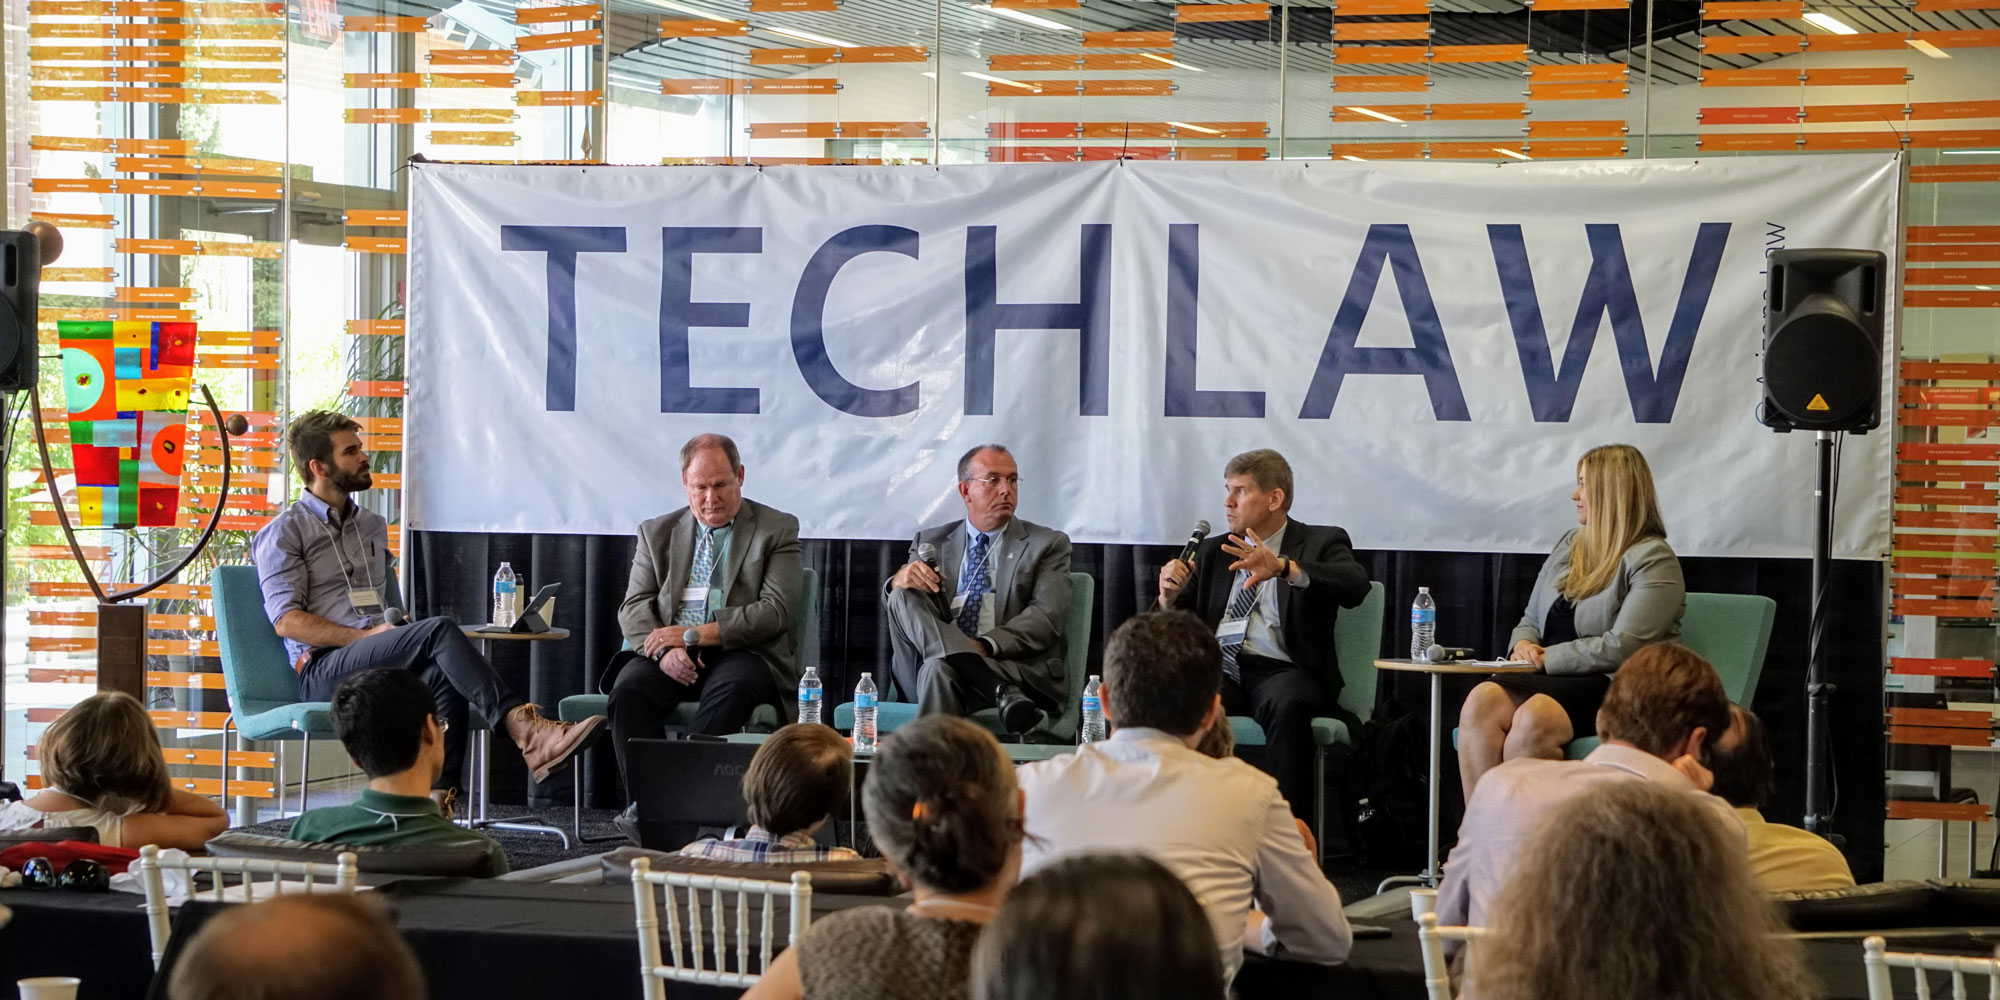 Panelists on stage at the University of Arizona Law TechLaw Conference